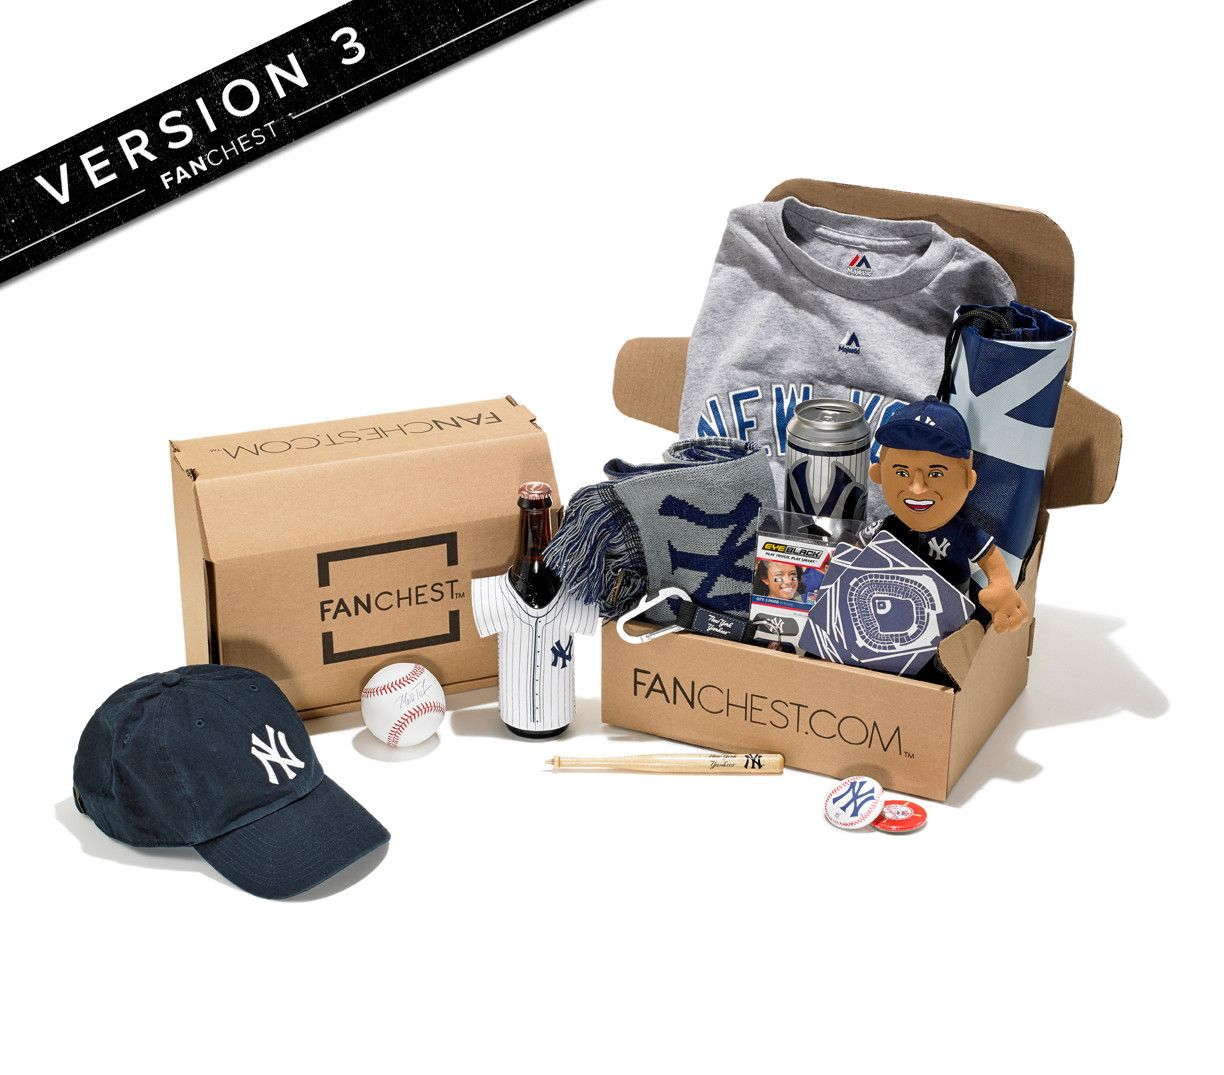 NY Yankees Gift Box | Yankees Gear | Perfect Gift for Yankees Fans • FANCHEST